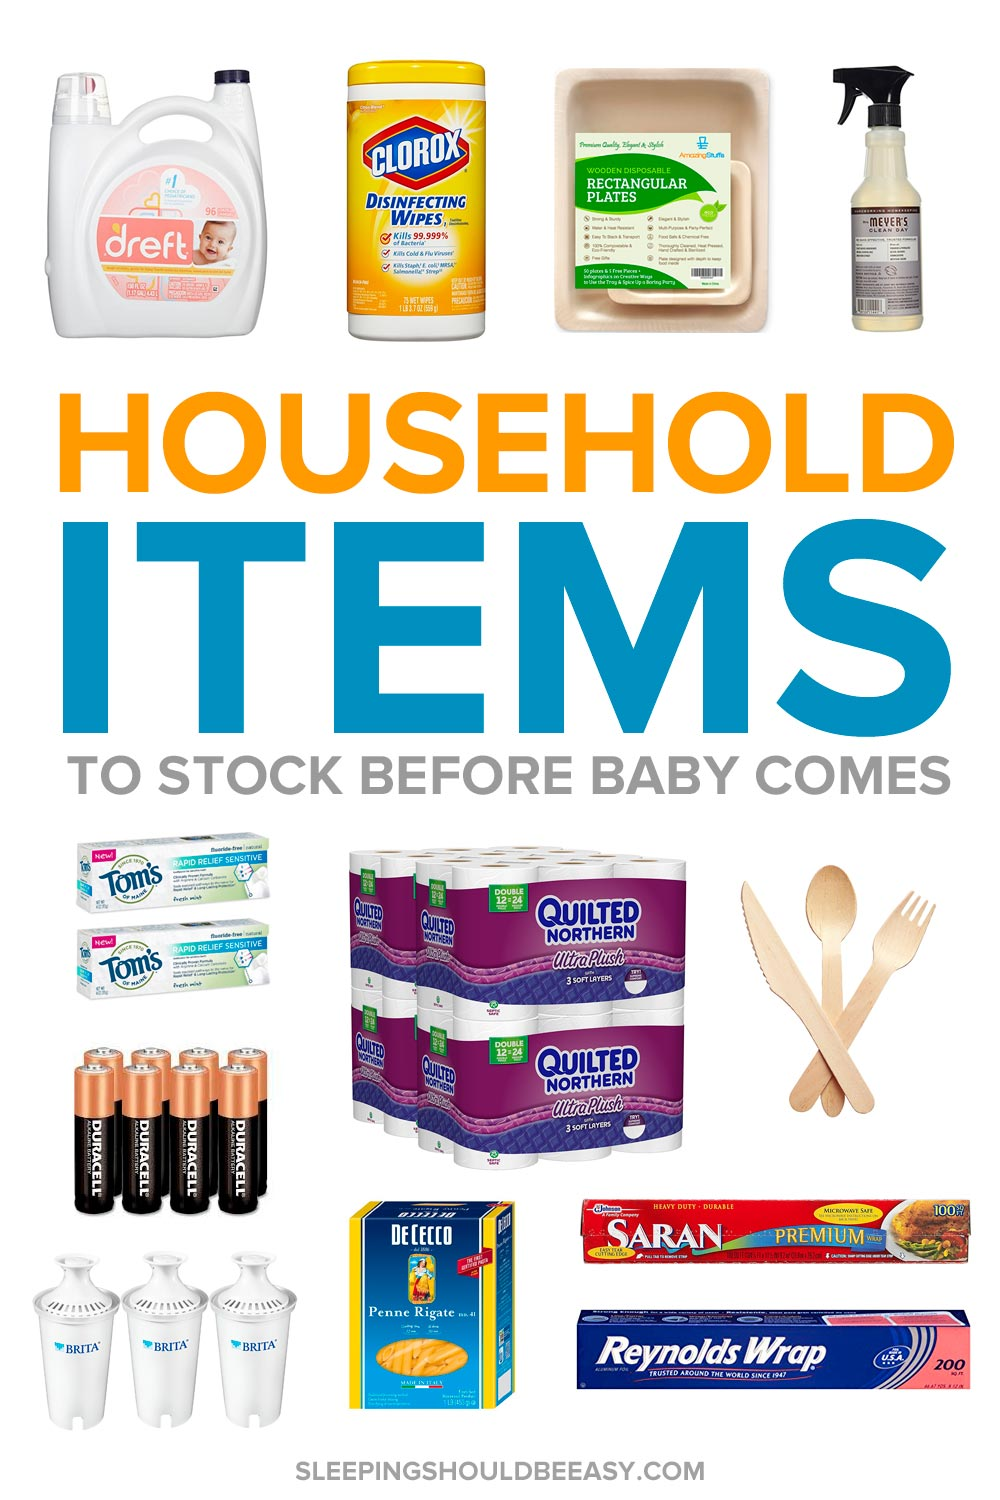 Gearing up for the new baby? Learn the essential household items to stock up before baby arrives and make those newborn months more convenient. Also includes a FREE printable tracker to help you track feeding and diaper times! #baby #babylife